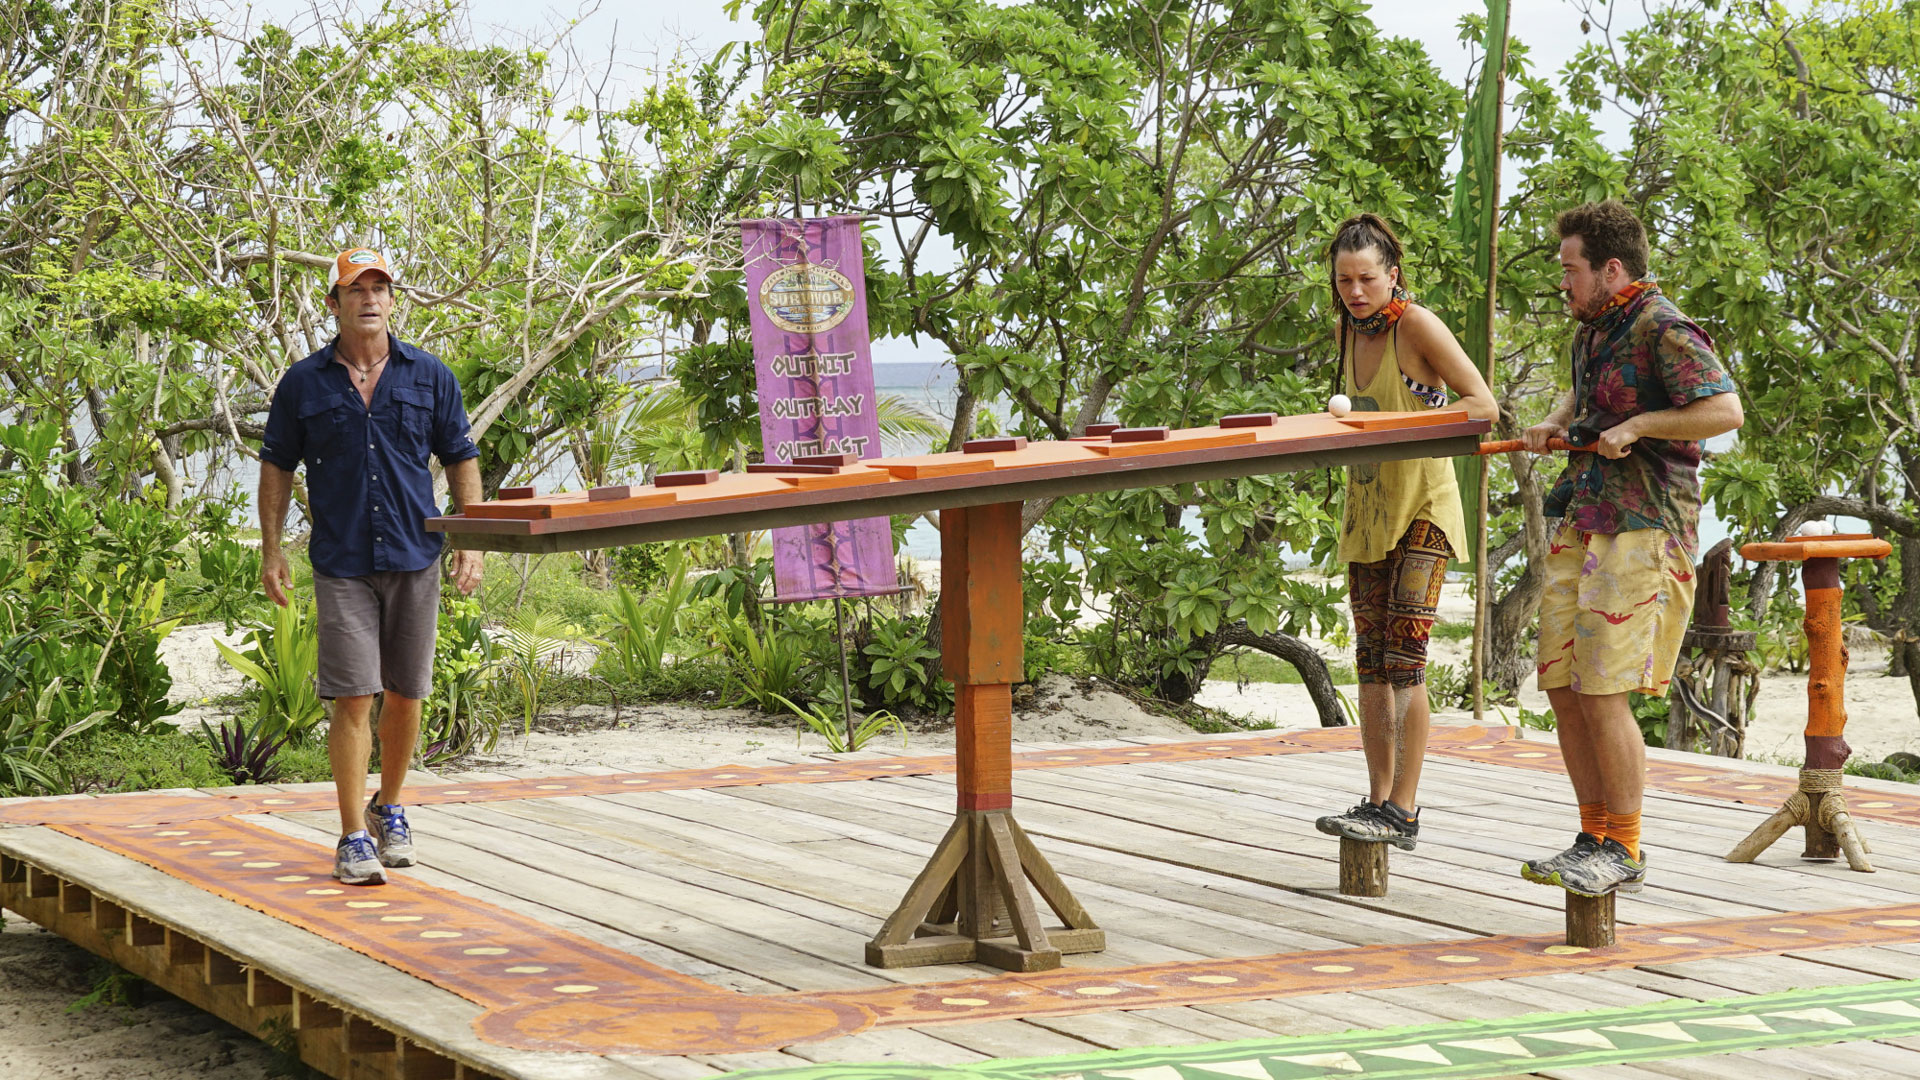 Jeff watches as Michelle and Zeke try their best at the final part of the challenge.